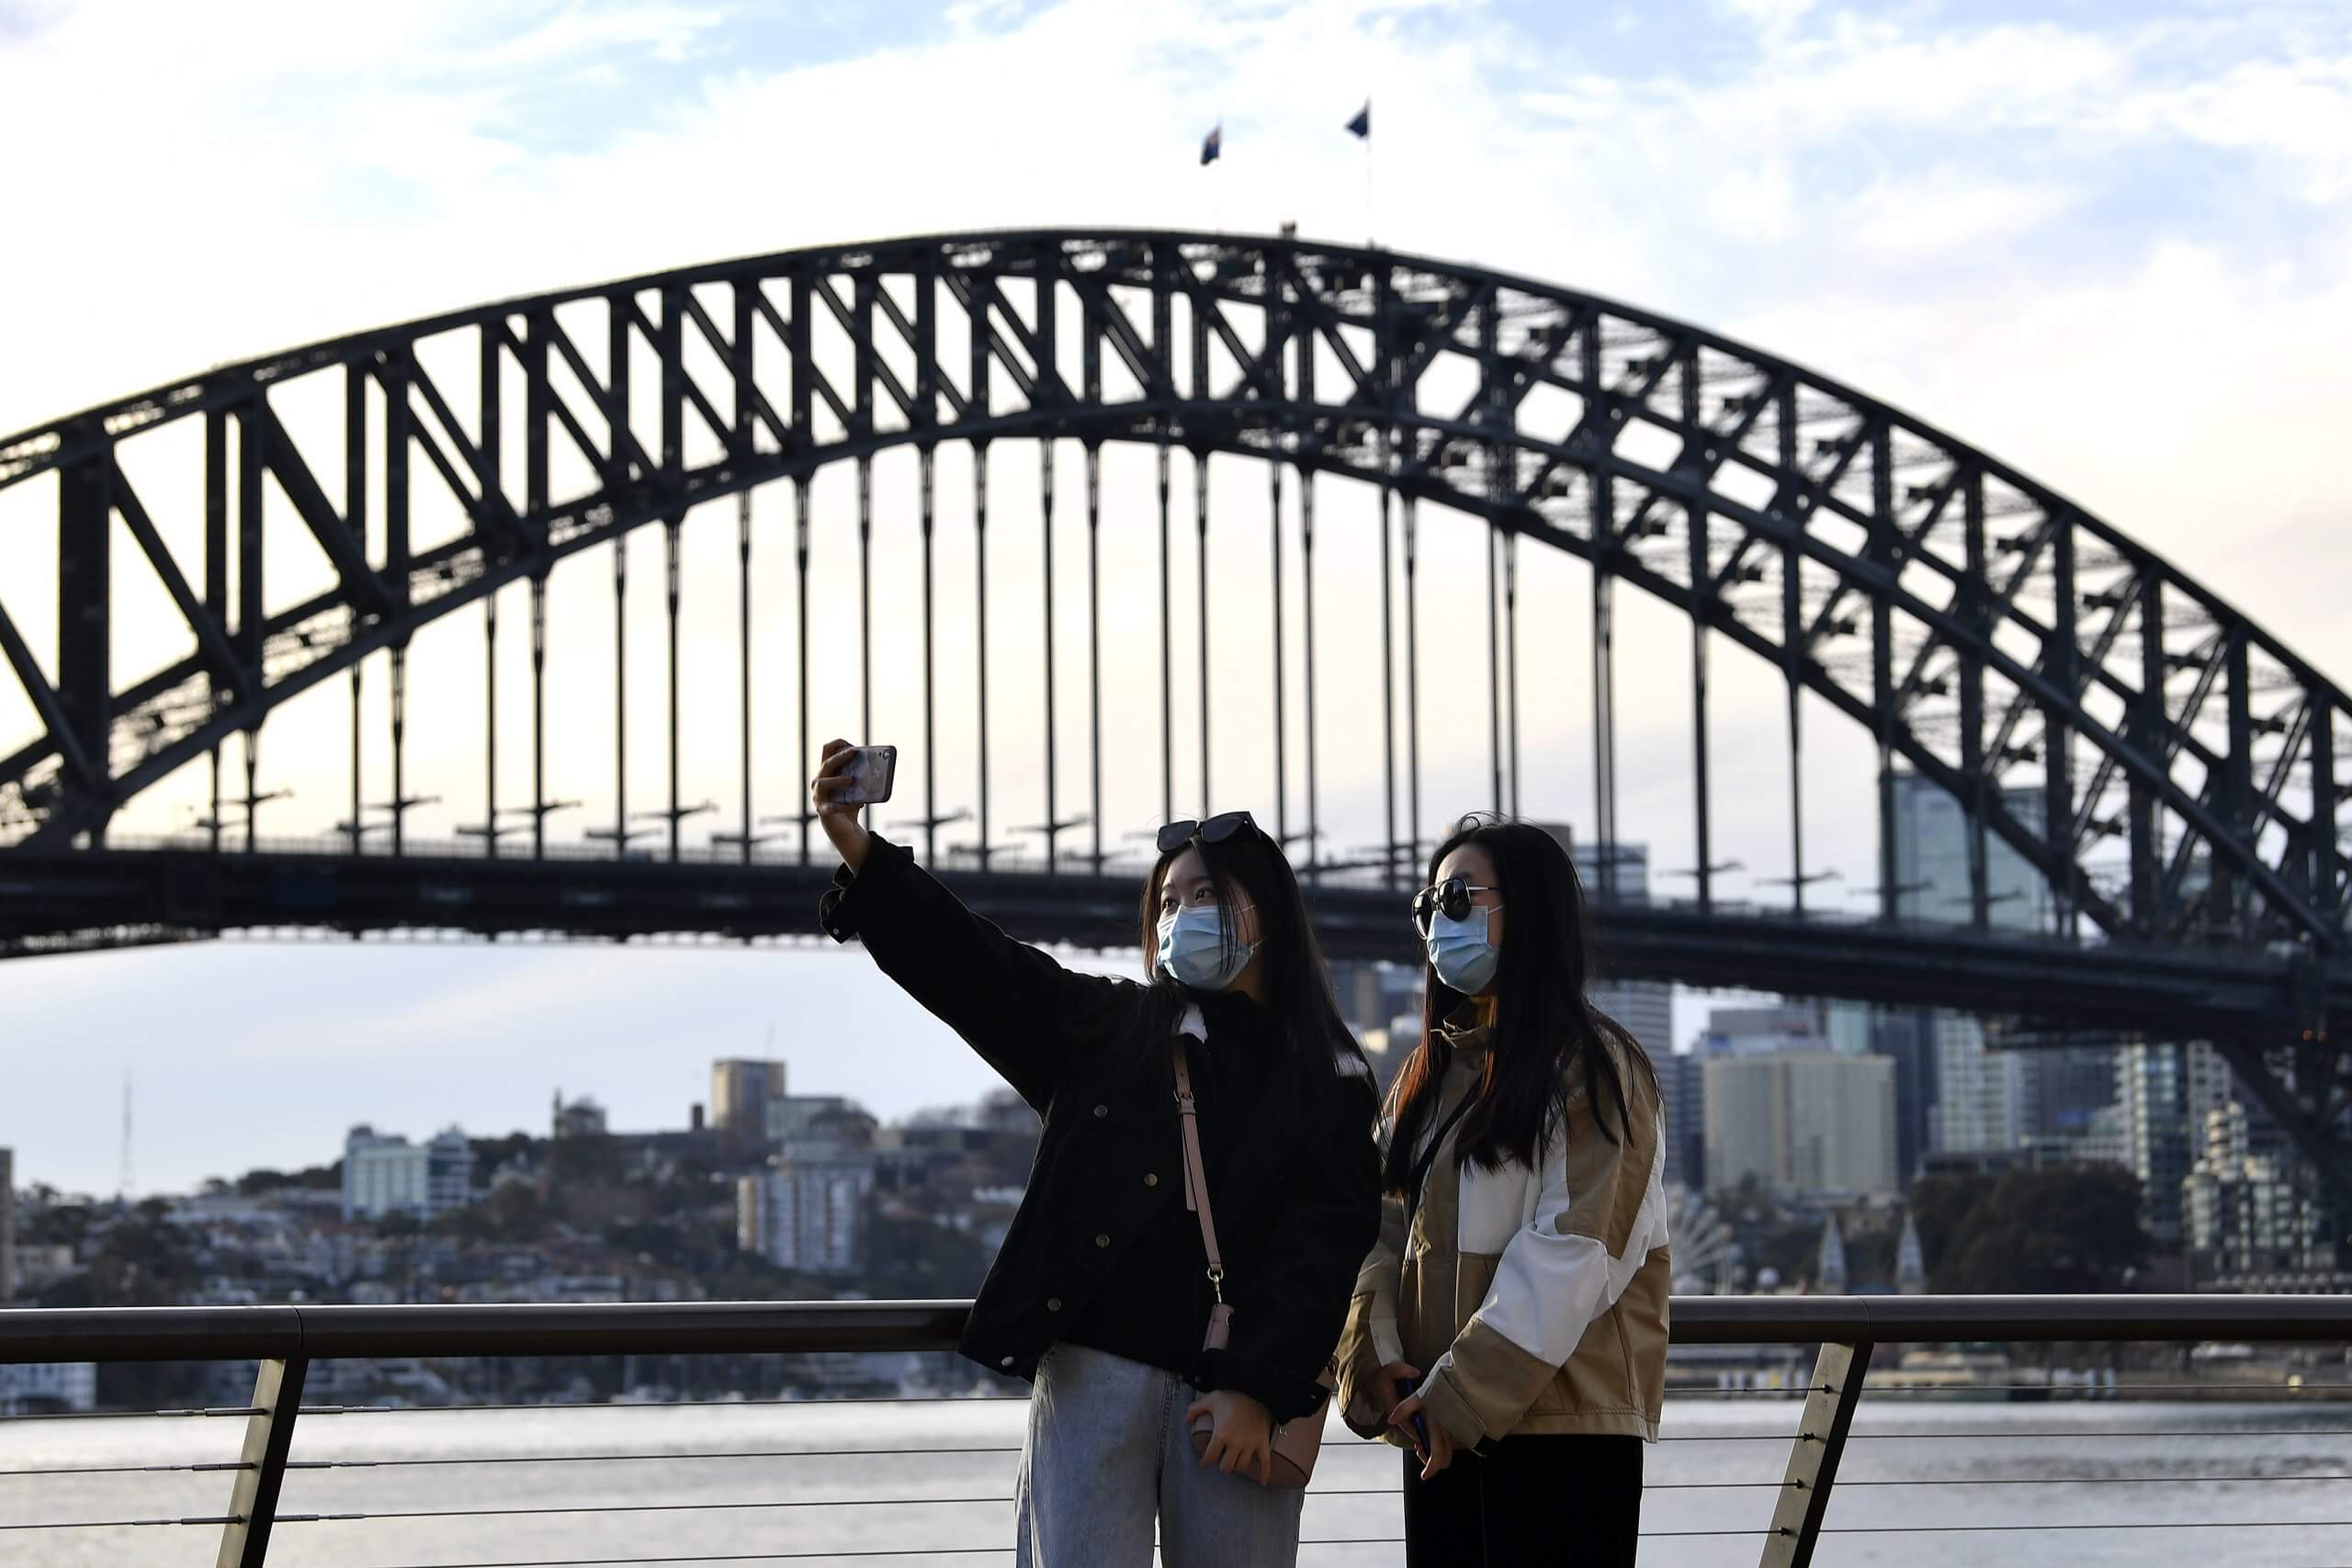 Australia's graduate work visa scheme attracts international students. Is it enough?